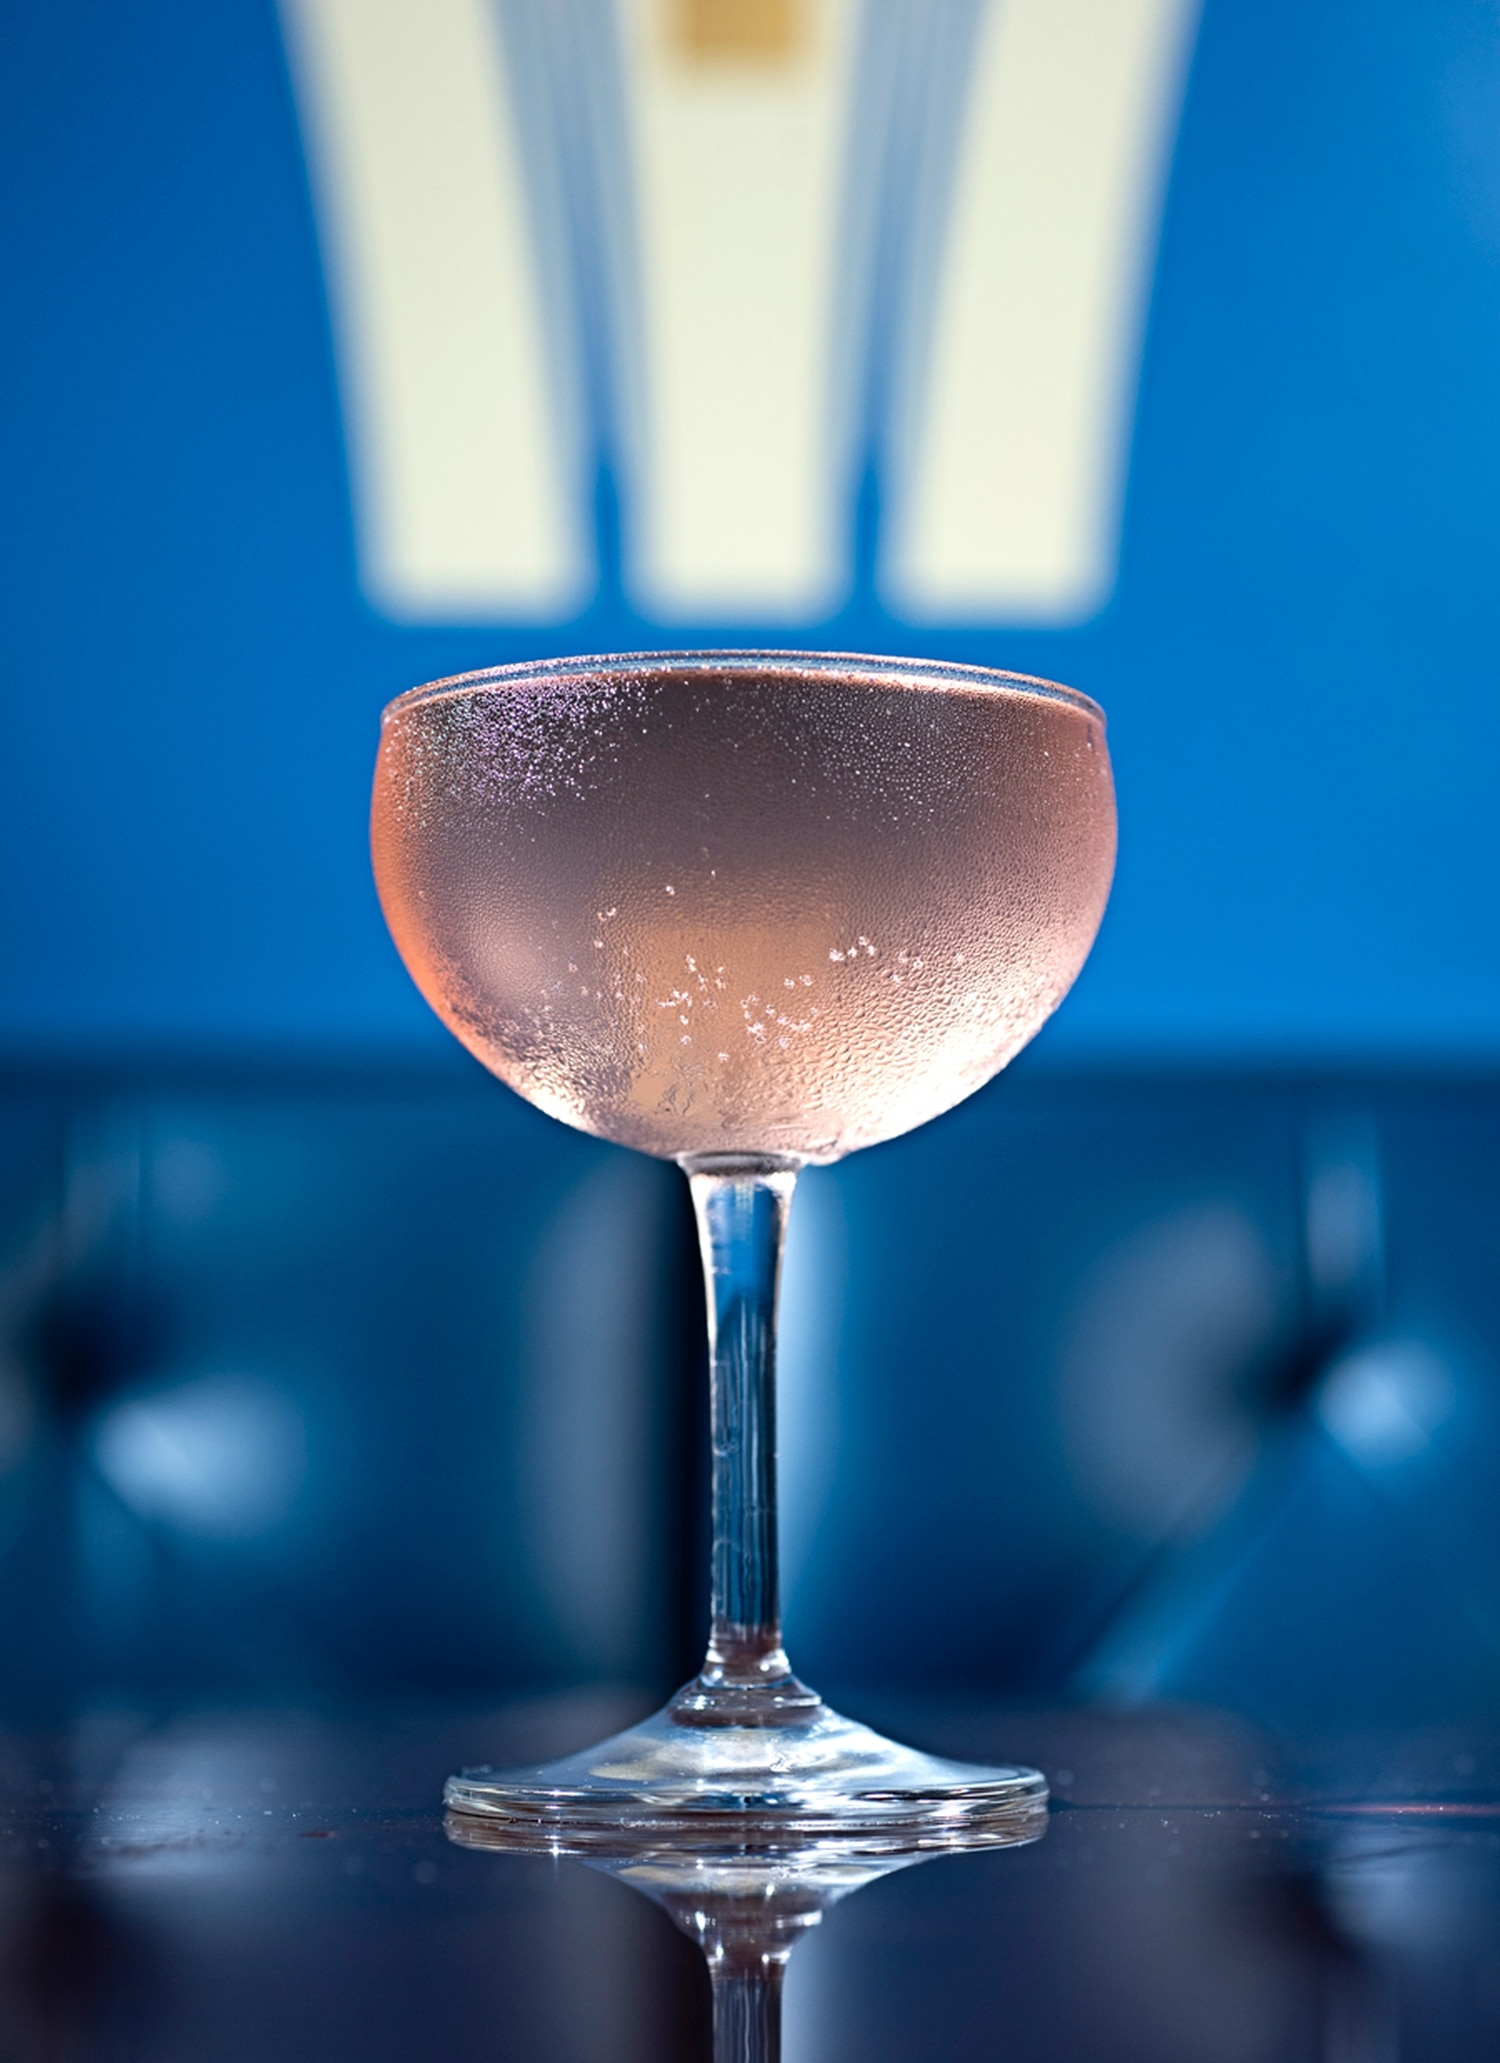 Vodka, passion fruit juice, cranberry syrup and sparkling wine ($11)